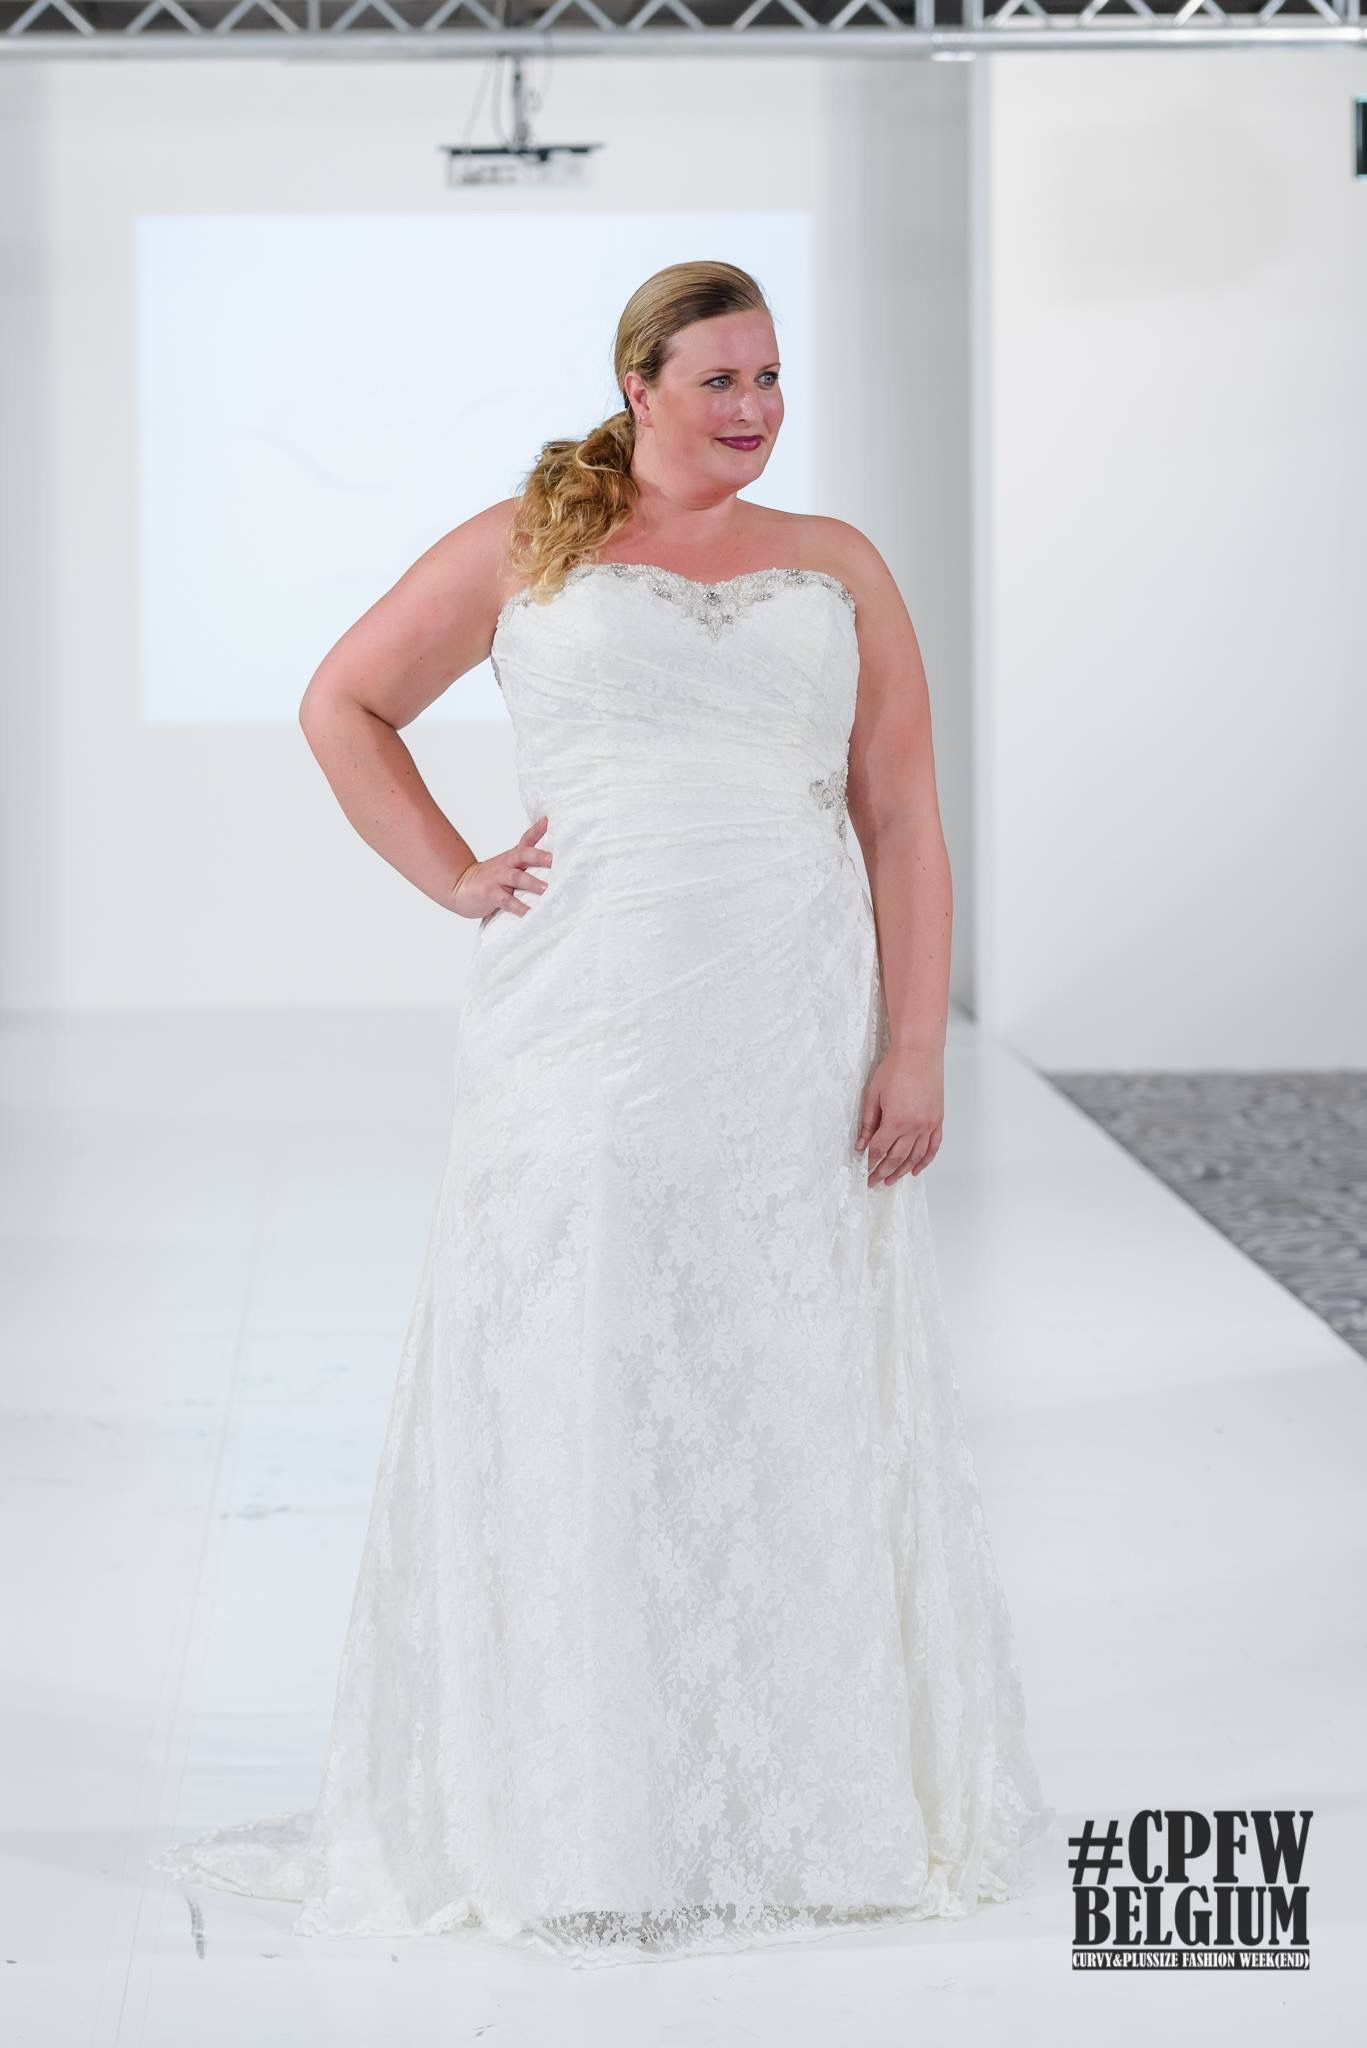 The dress is chanel - Our Dress Chanel On The Catwalk During Last Week S Curvy Plussize Fashion Week